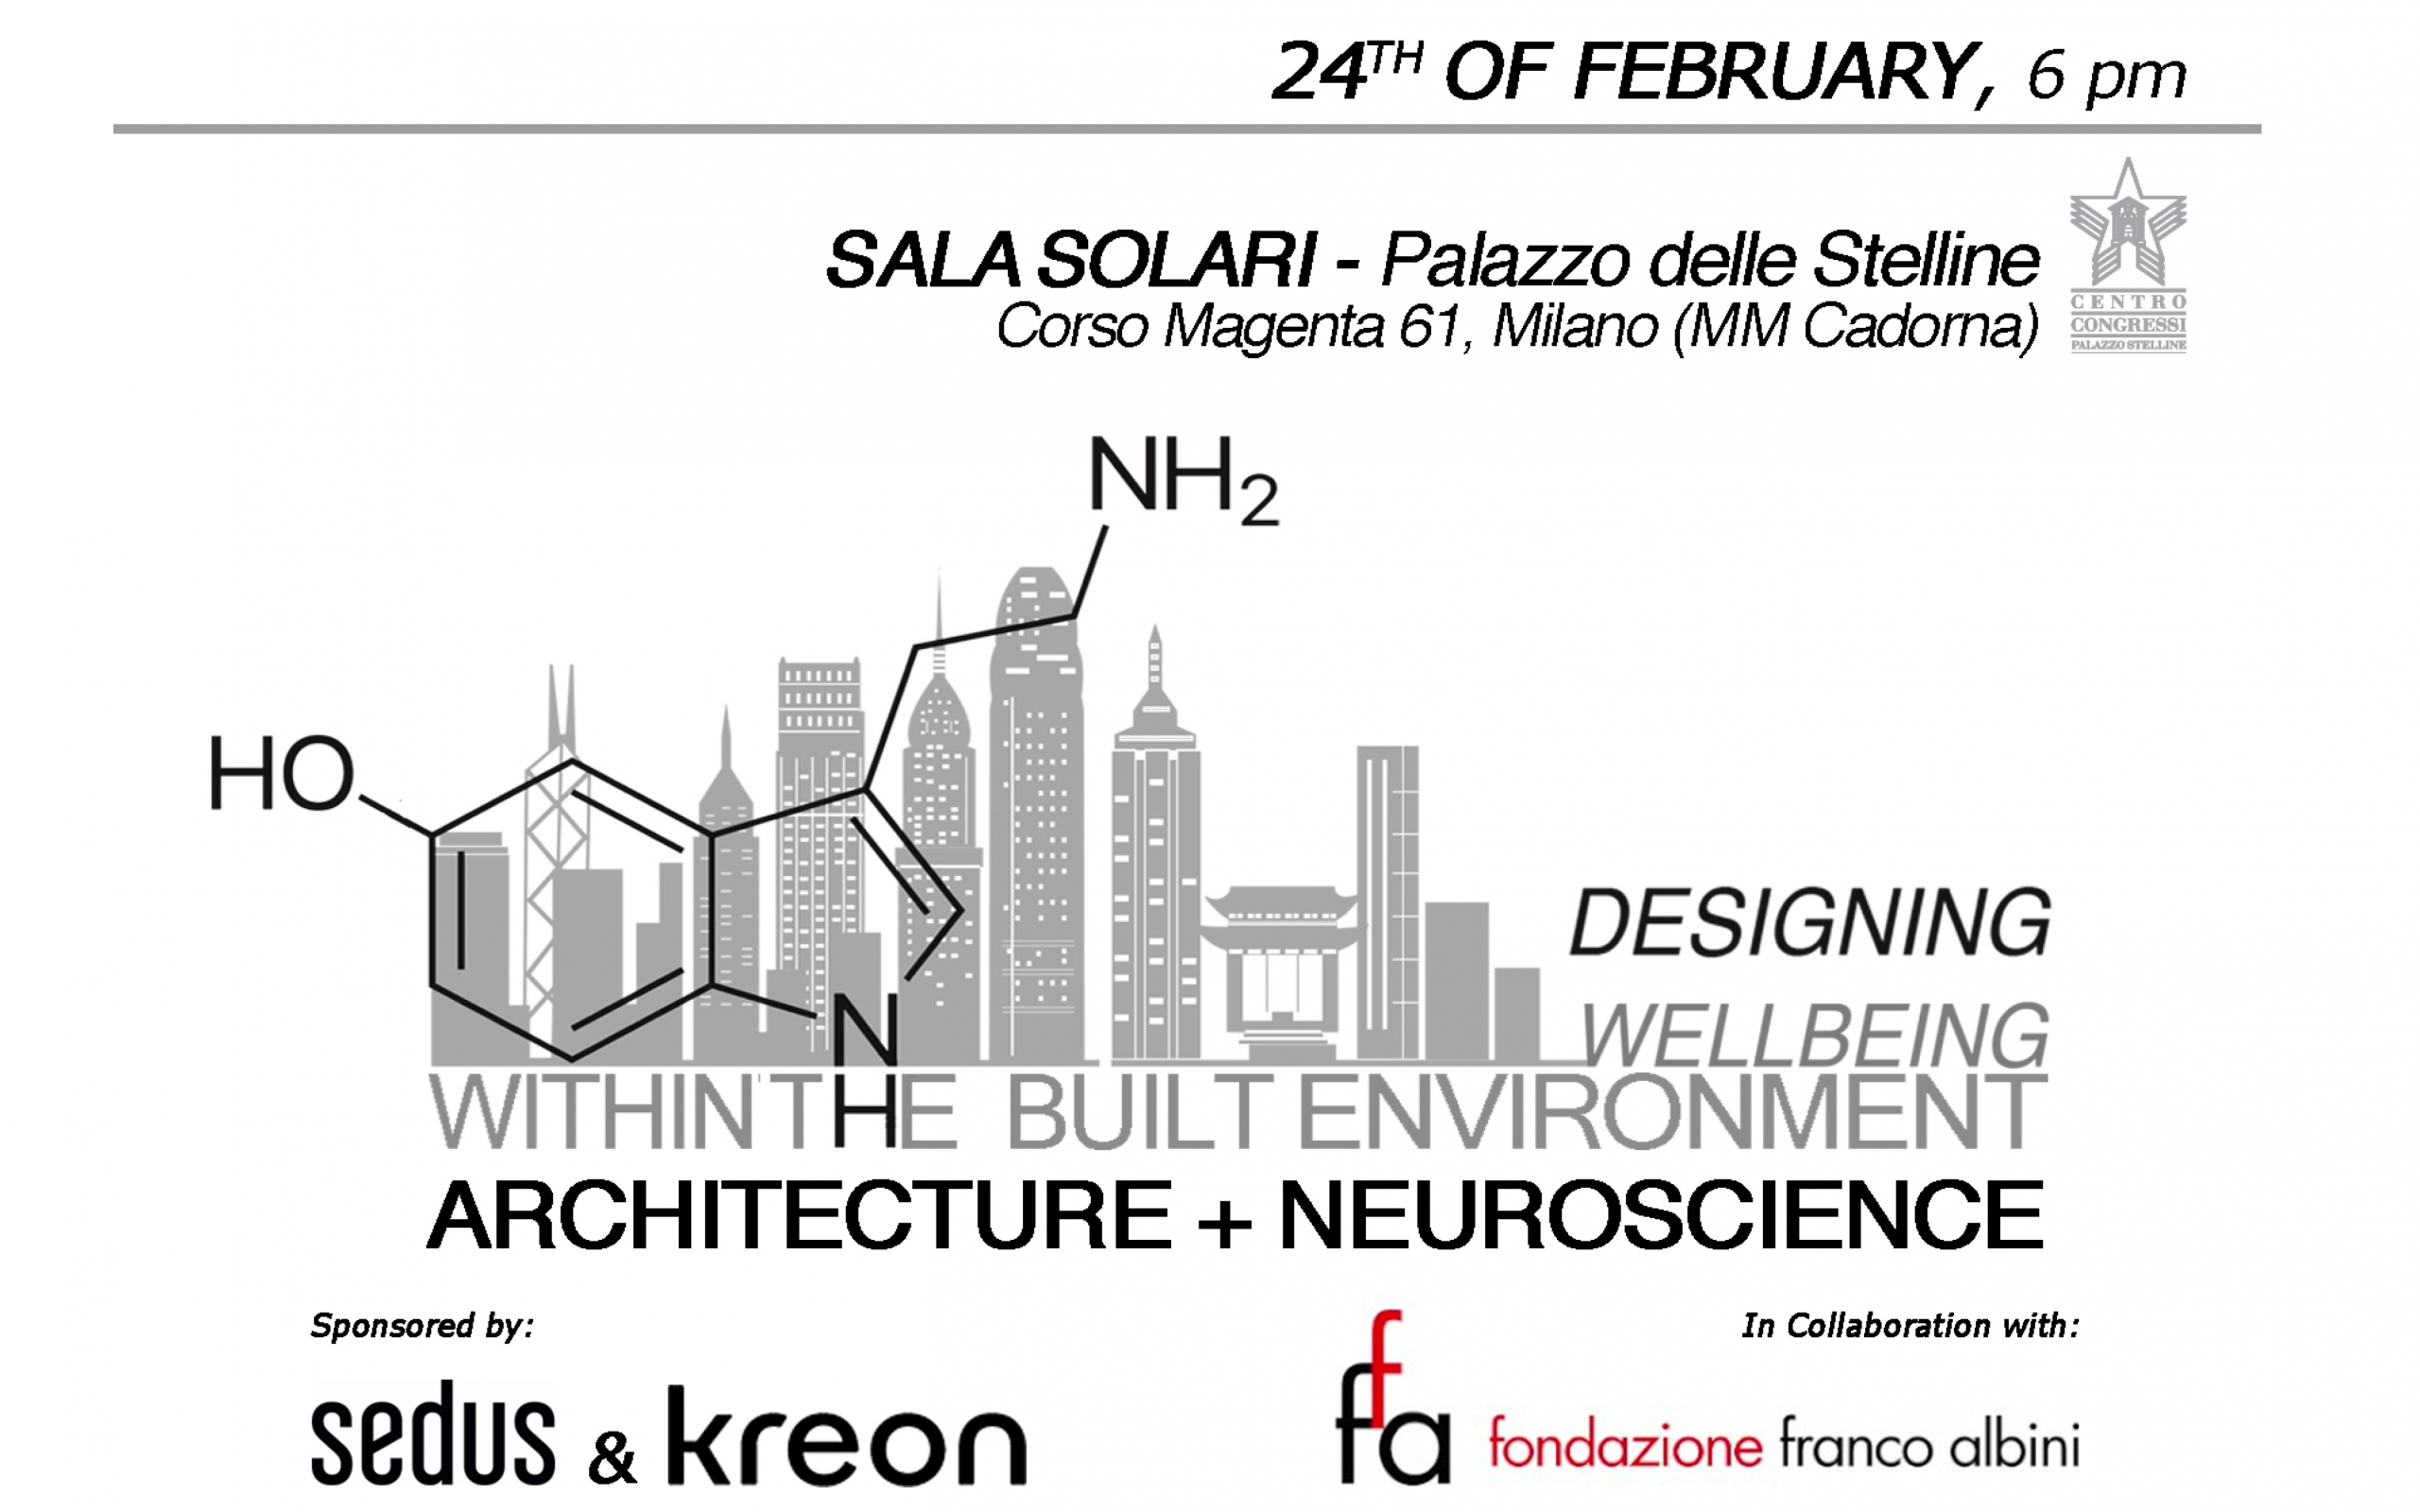 Conference Architecture + Neuroscience